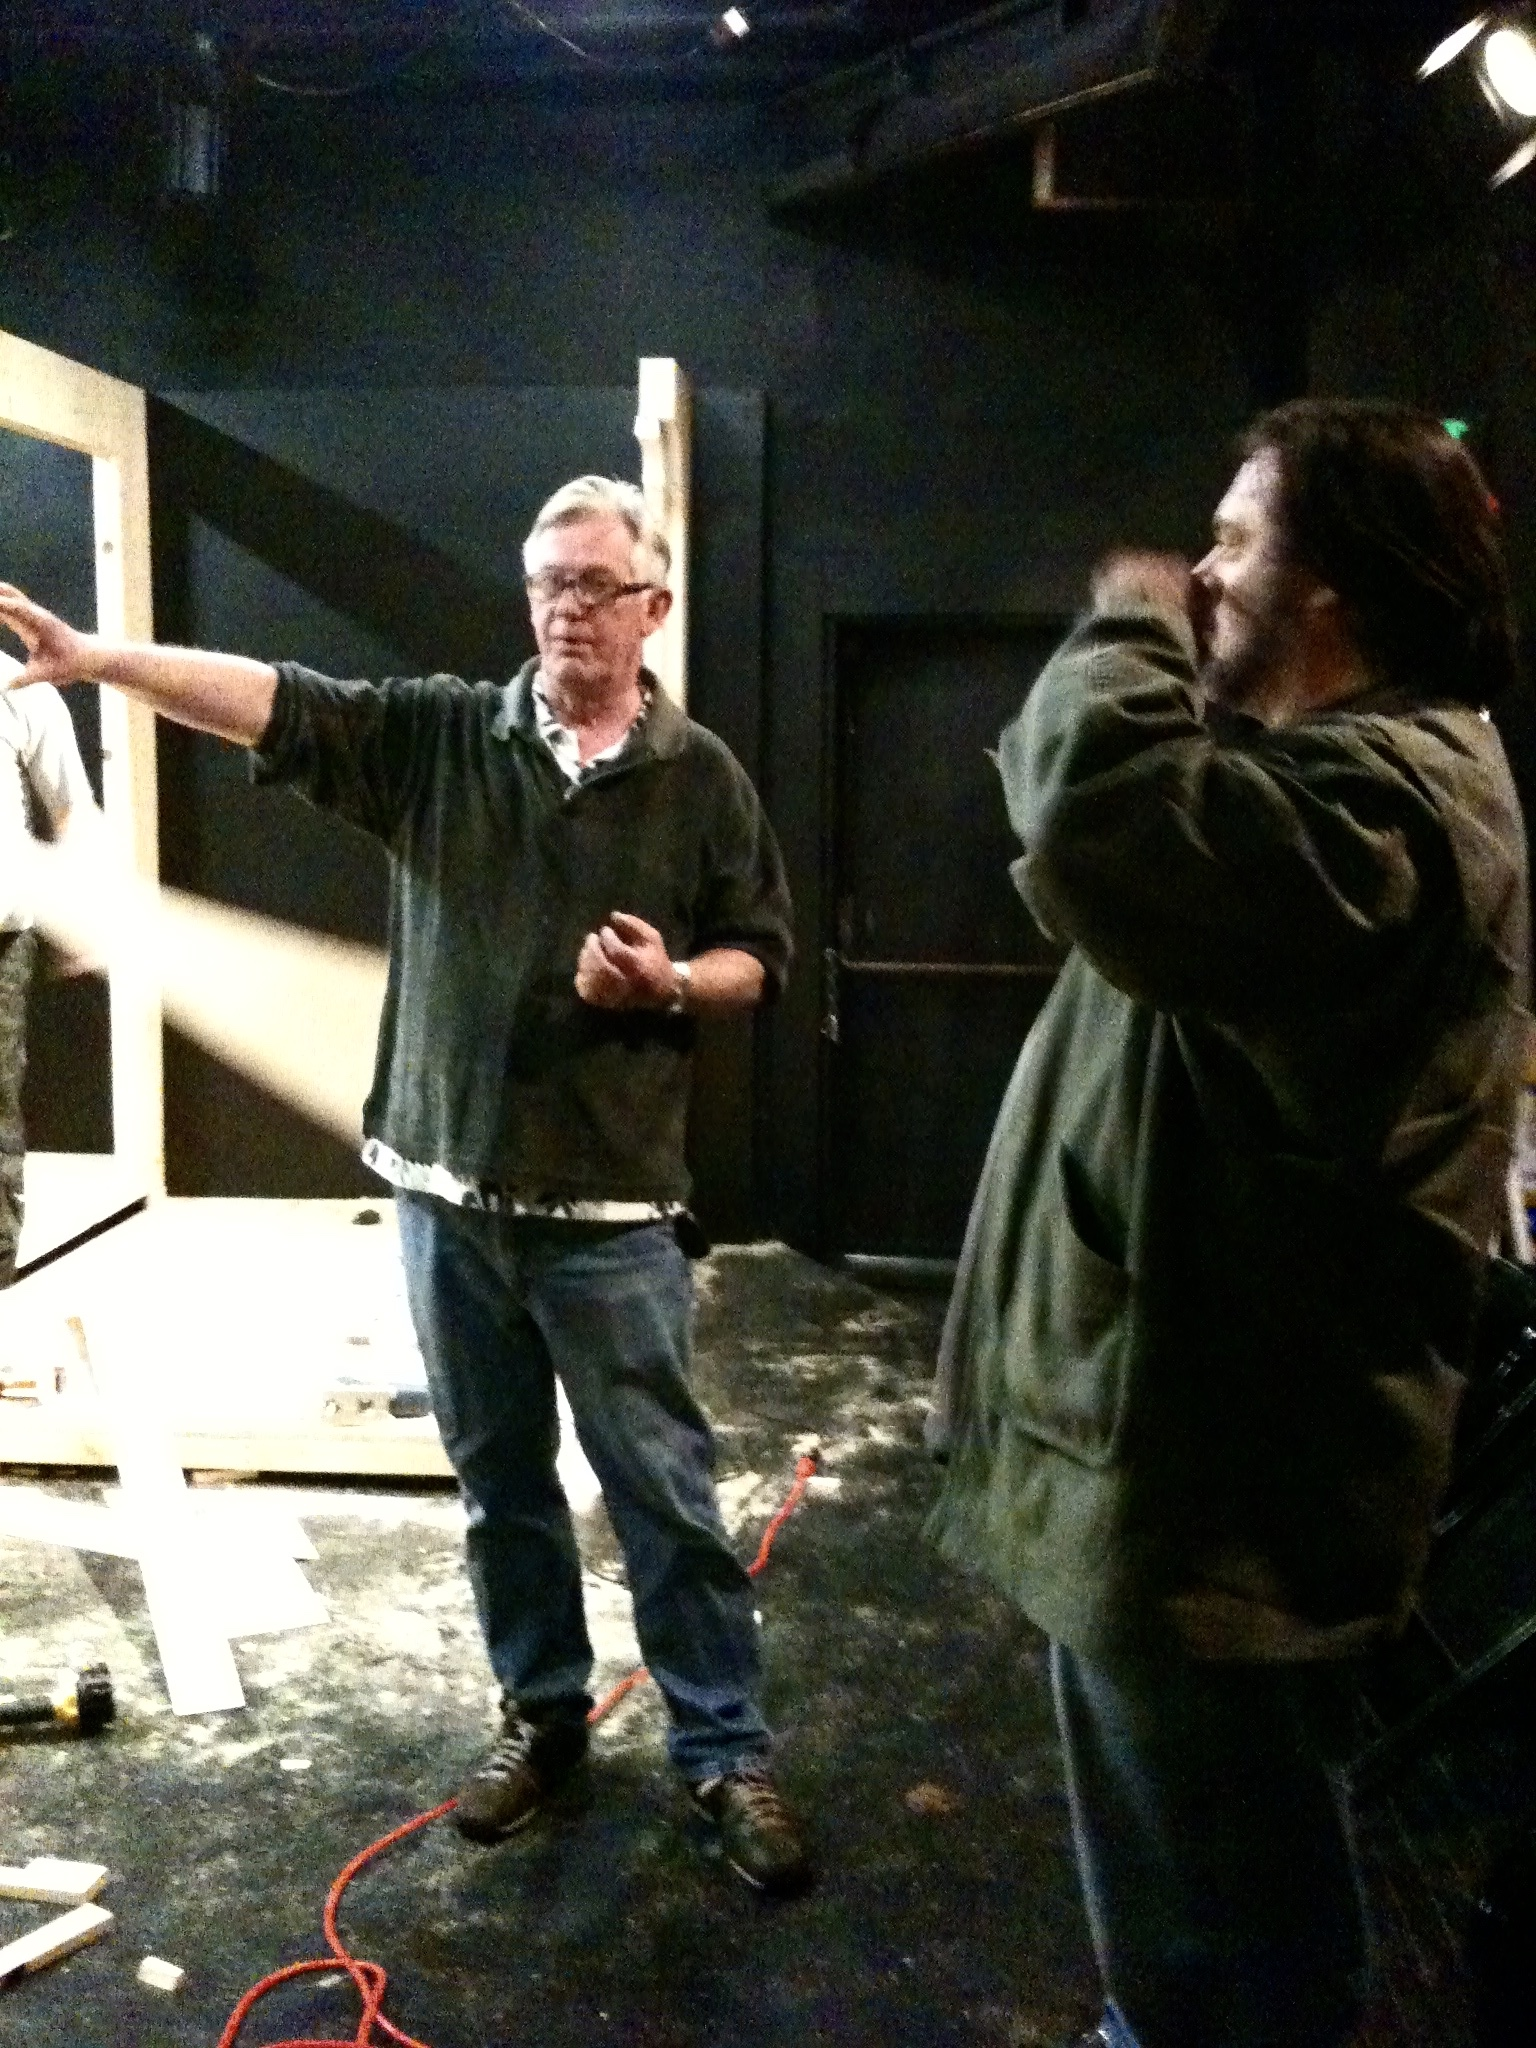 Lighting designer Richard Taylor and director John Drouillard talk over some details during the load-in of Lascaux Entertainment's 2011 production of  The Elephant Man , directed by Drouillard.  Photo by Natalie Drouillard.